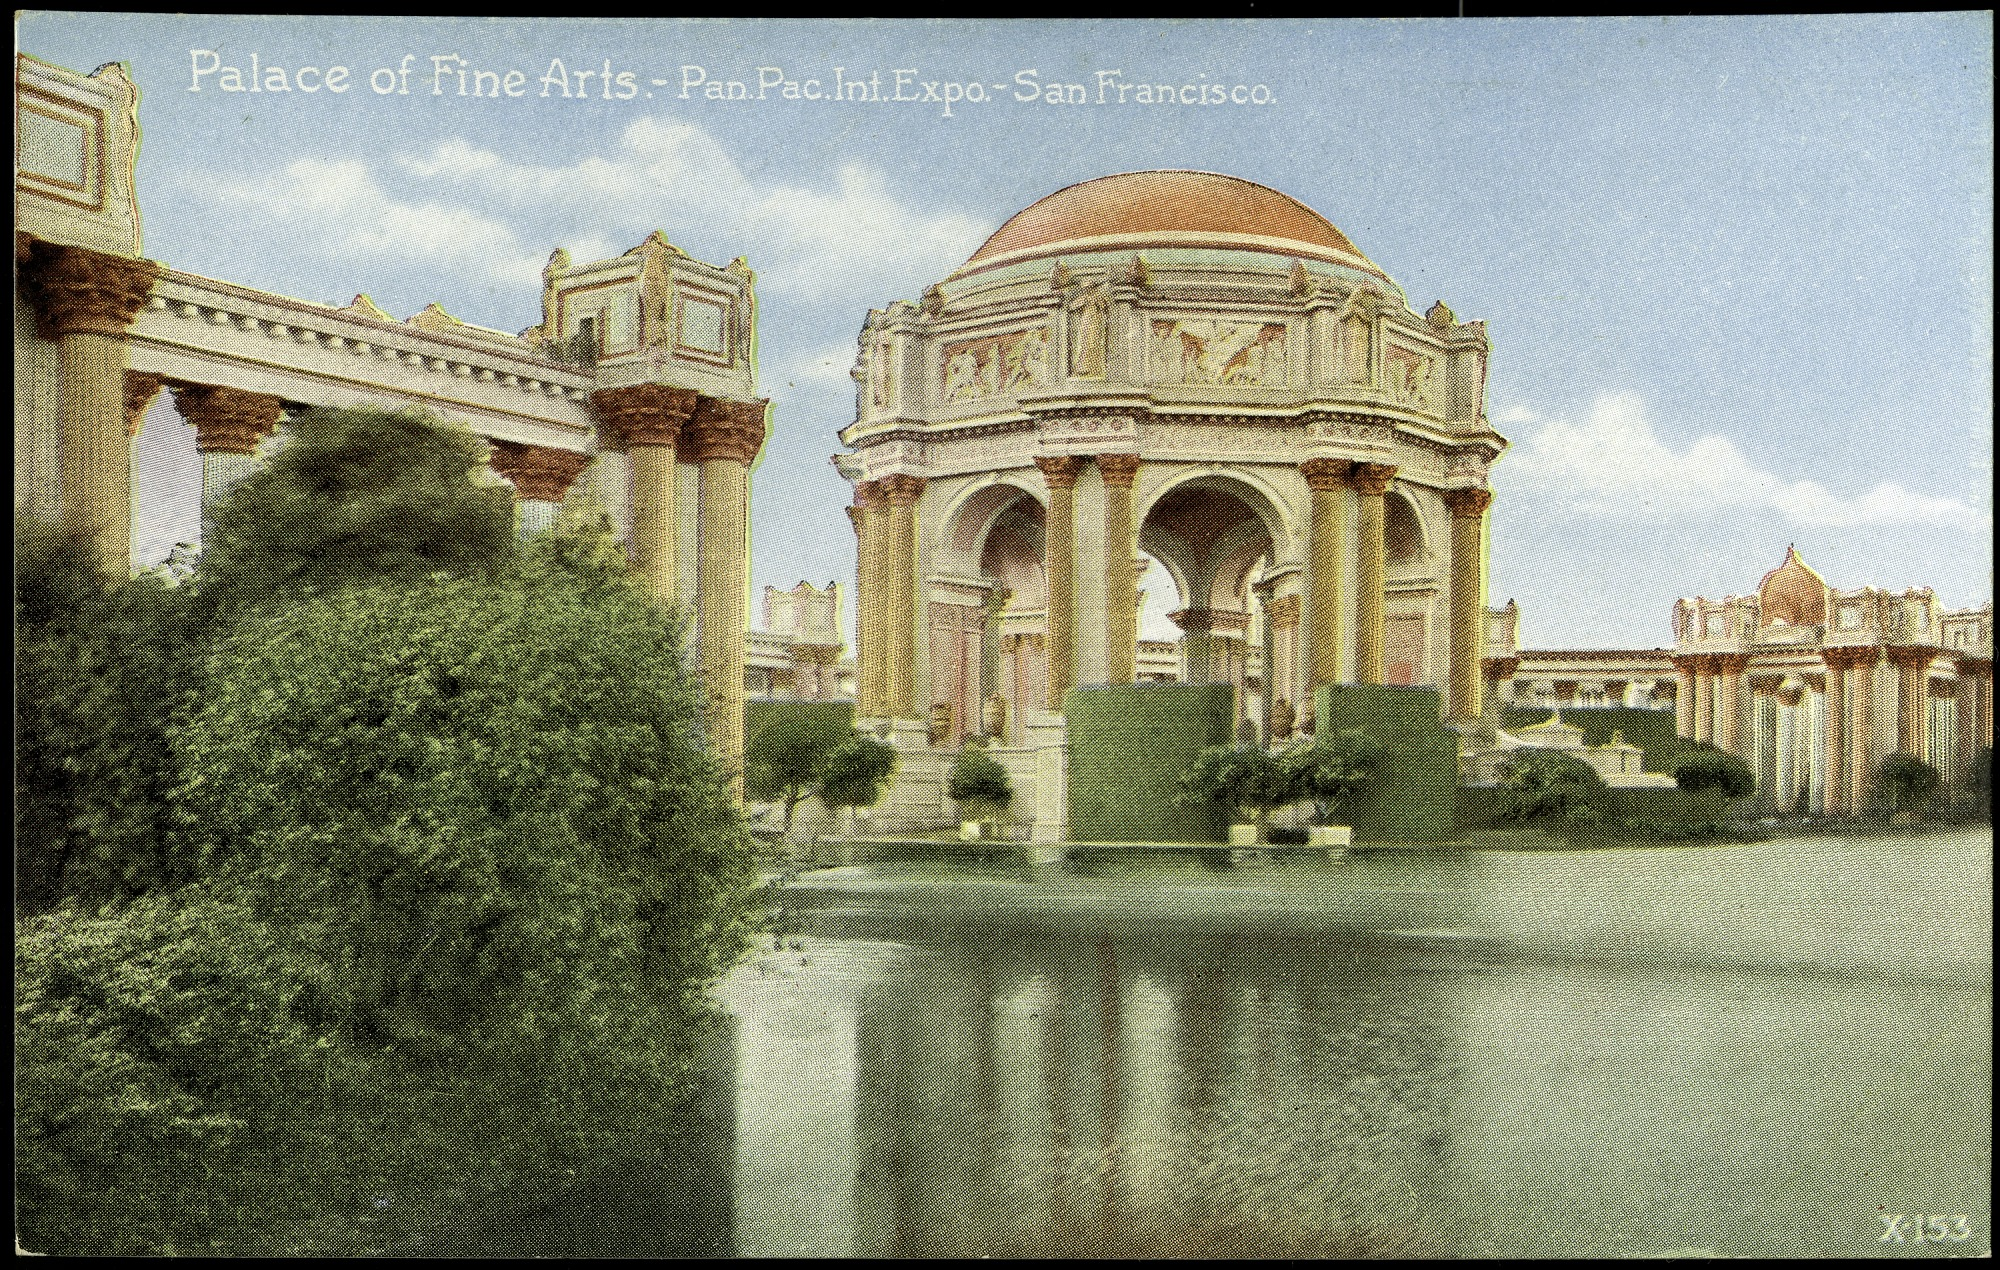 Palace of Fine Arts Postcard from the Panama-Pacific Exposition, by Unknown, 1915, Smithsonian Archives - History Div, SIA2012-7597 (front) and SIA2012-7598 (back).